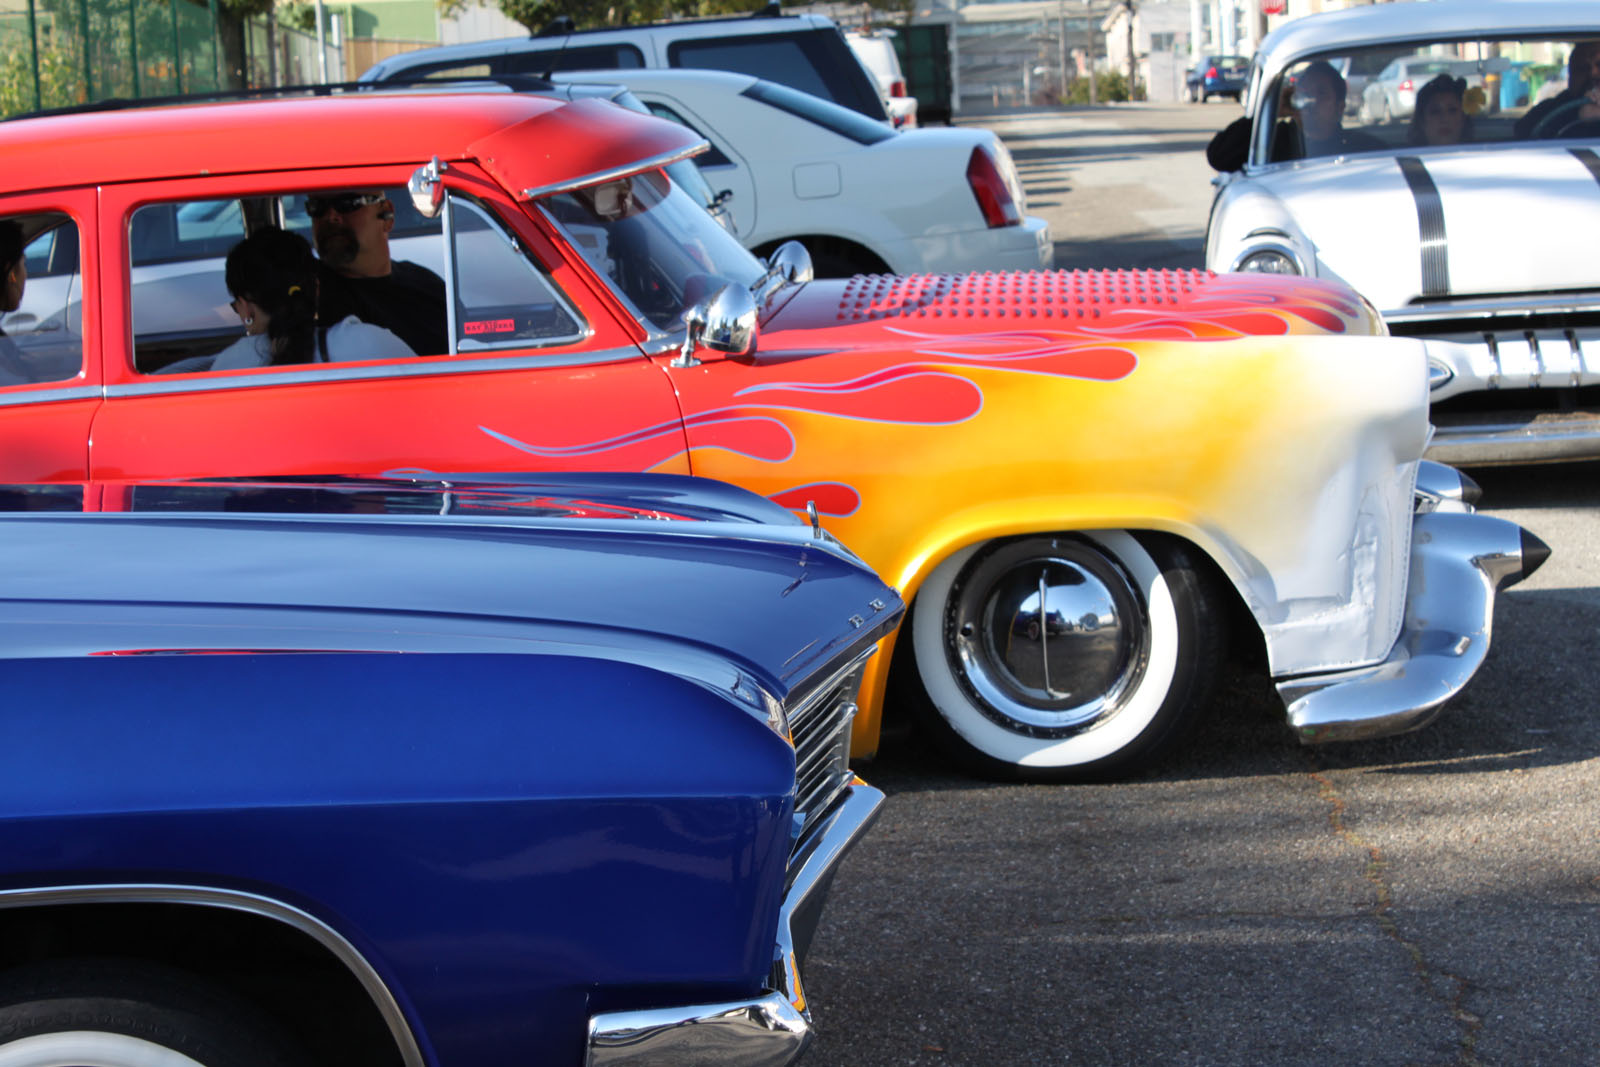 KQED Doc Explores History of Lowriders